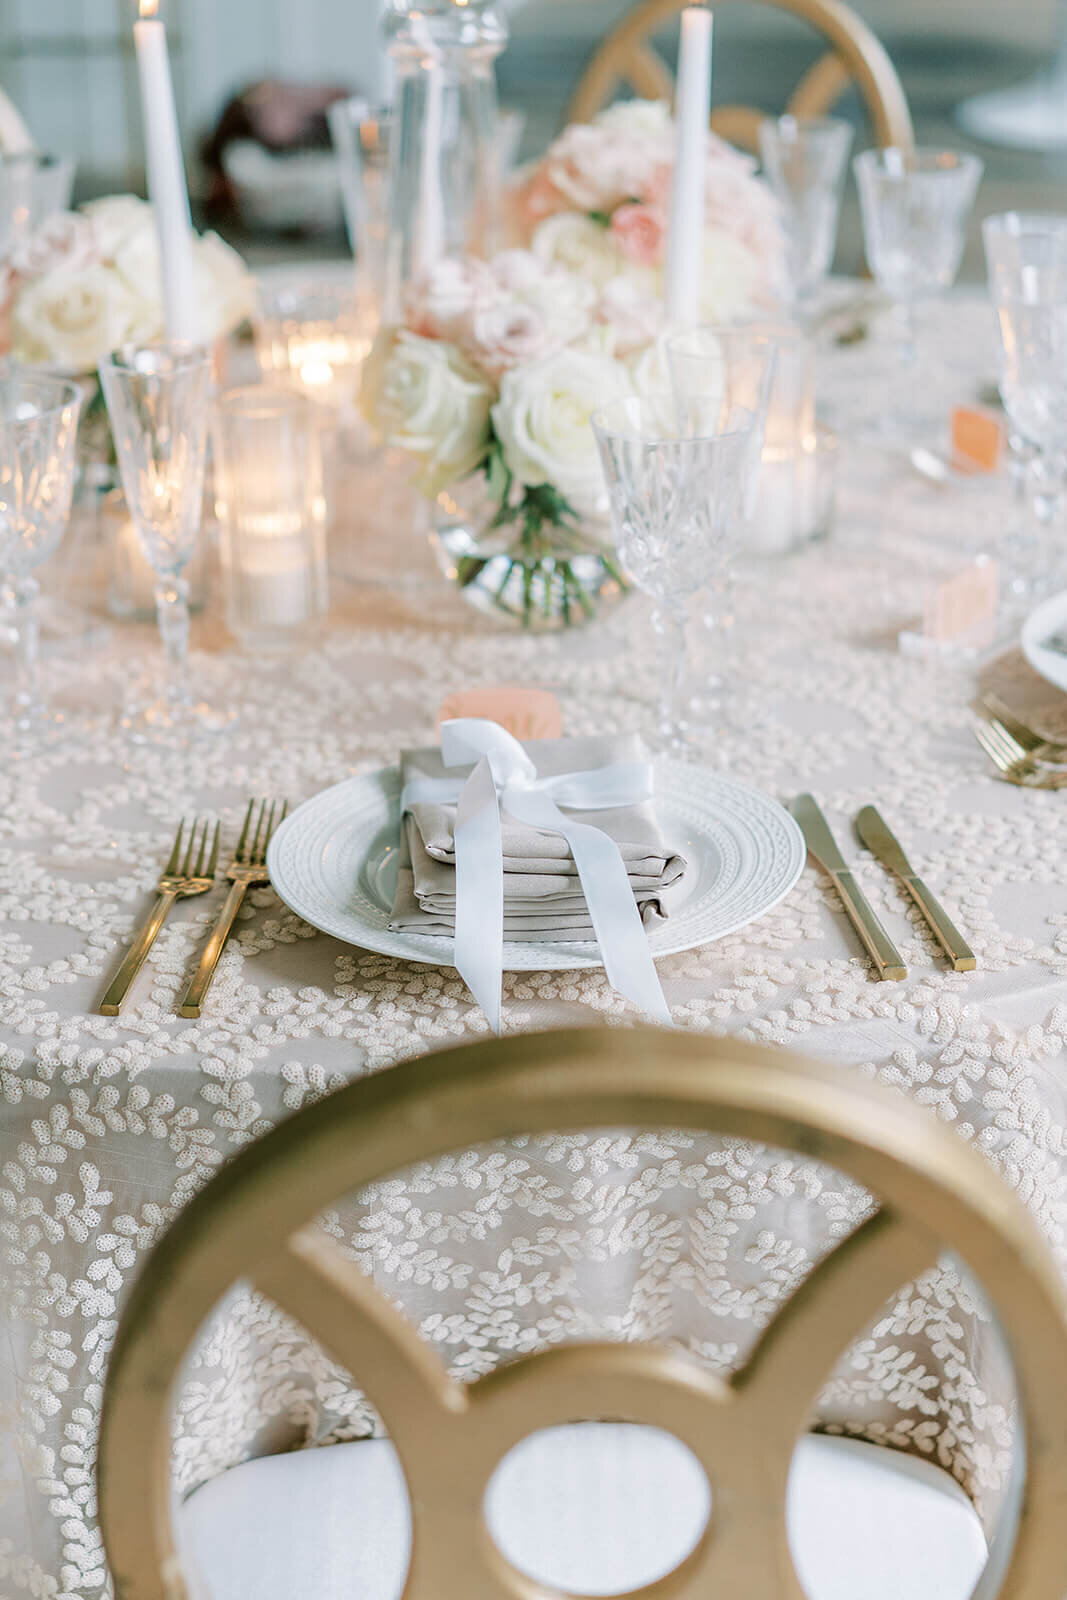 White-blush-accent-centerpiece-wedding-reception-portfolio-klassy-kreations